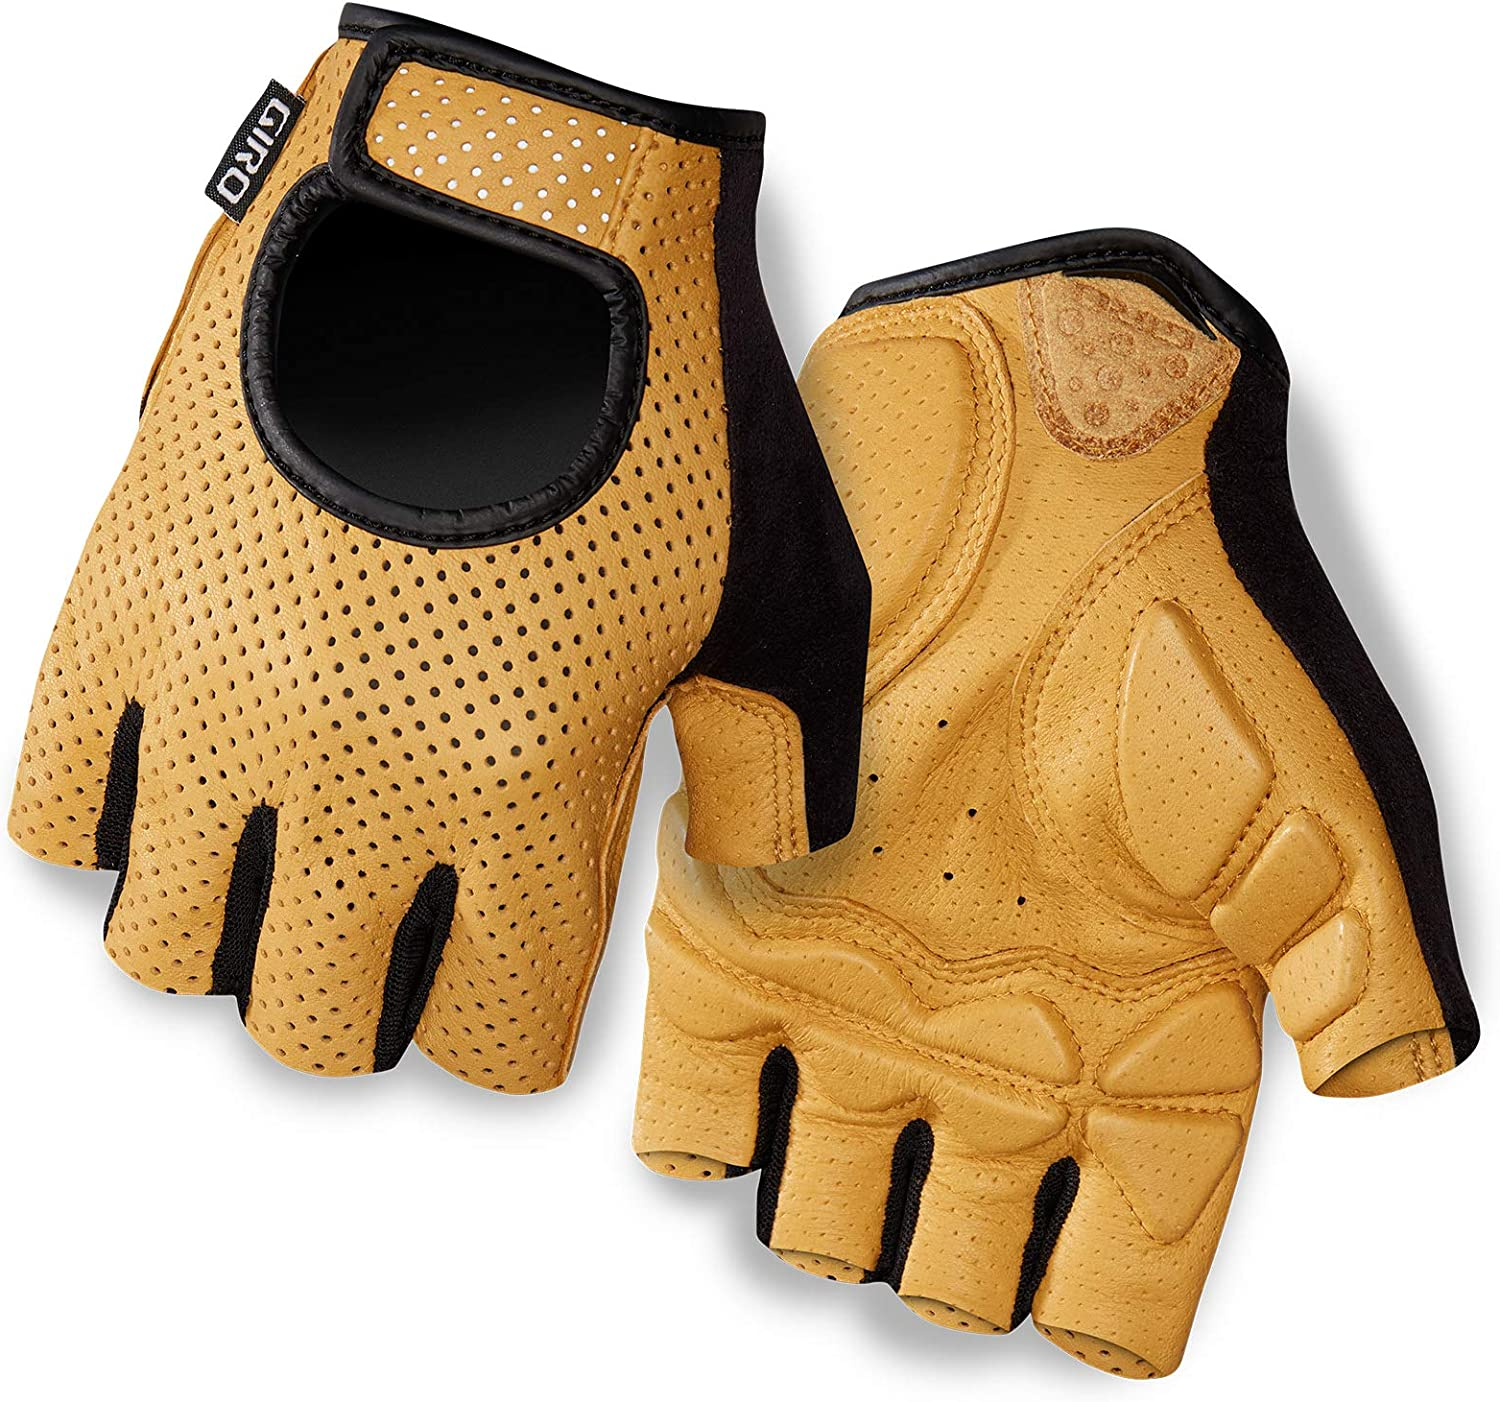 Giro LX Men's Max 81% OFF Complete Free Shipping Gloves Road Cycling